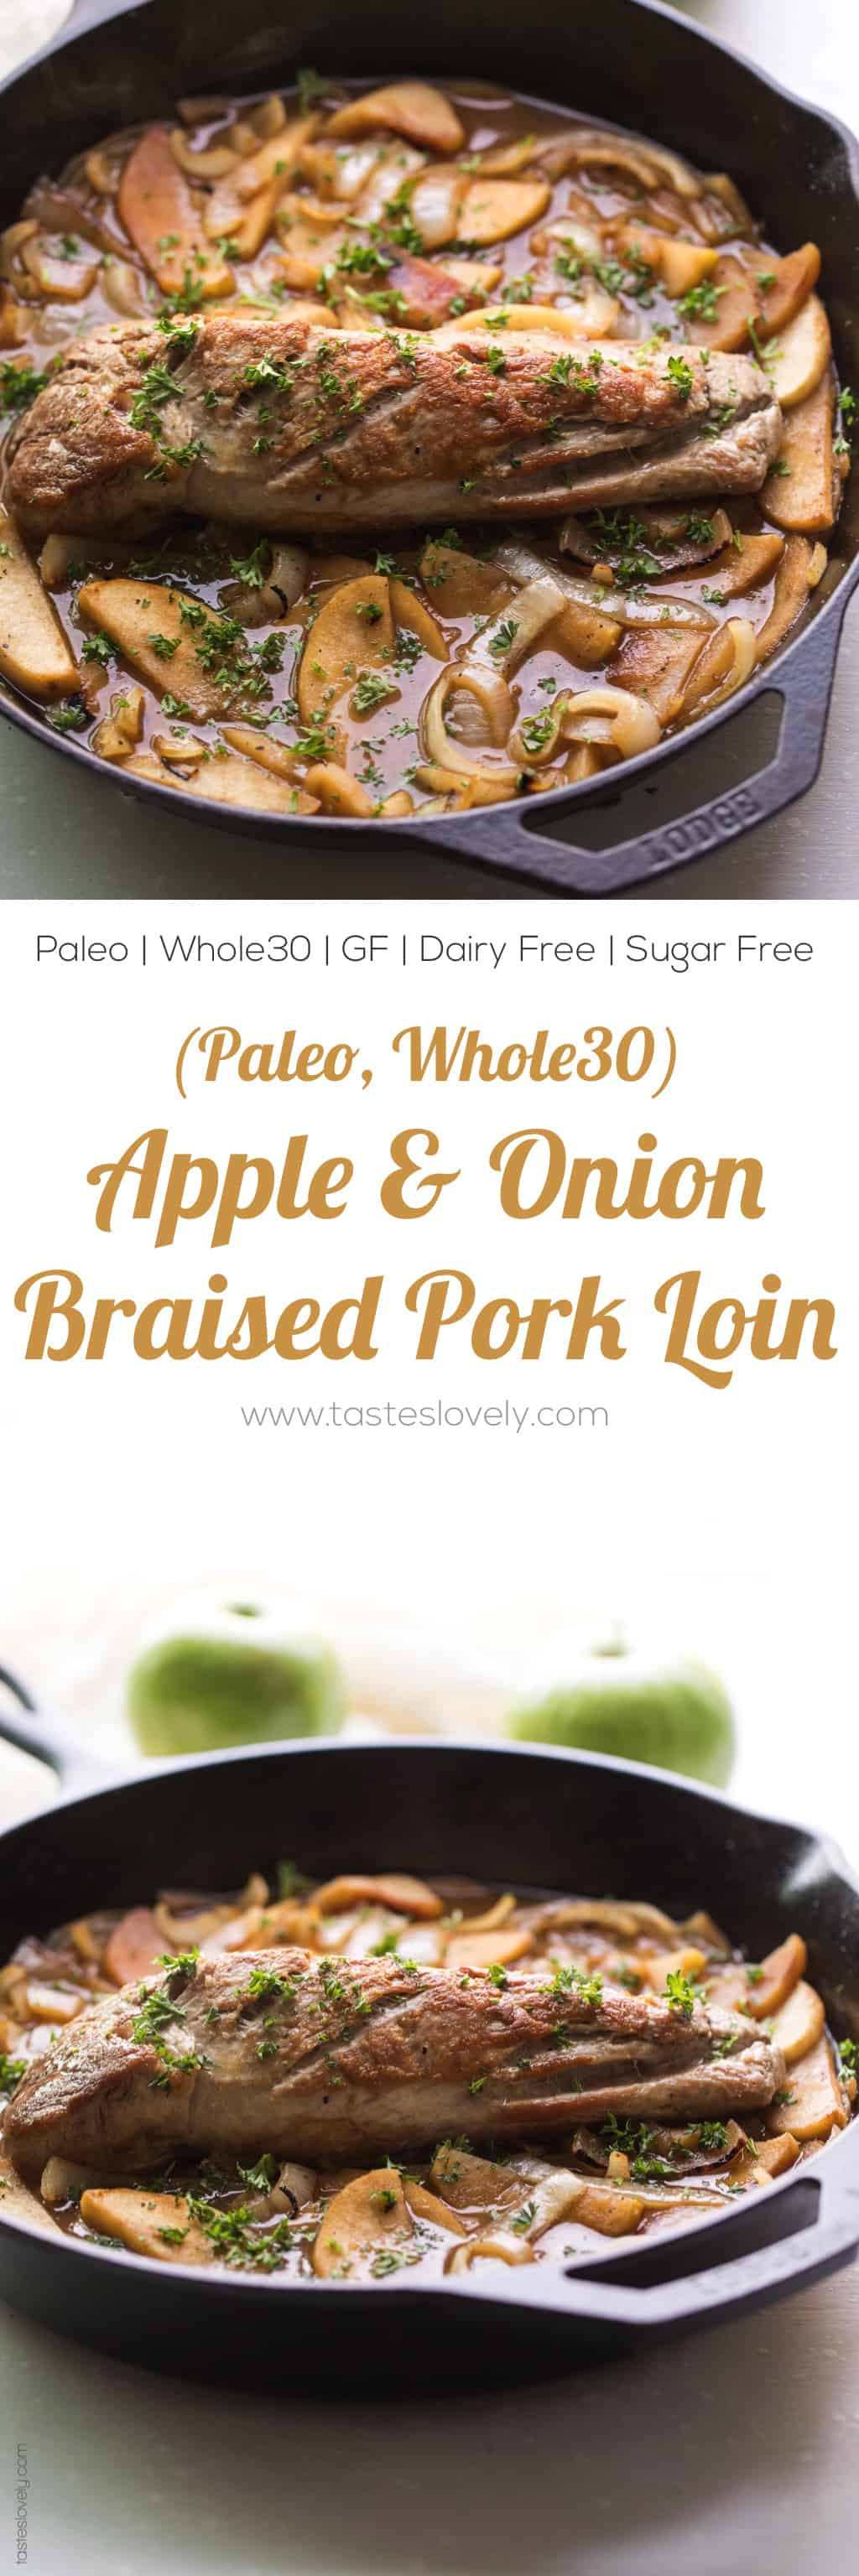 Paleo and Whole30 Apple & Onion Braised Pork Tenderloin - a flavorful and juicy dinner recipe that is dairy free, gluten free, sugar free